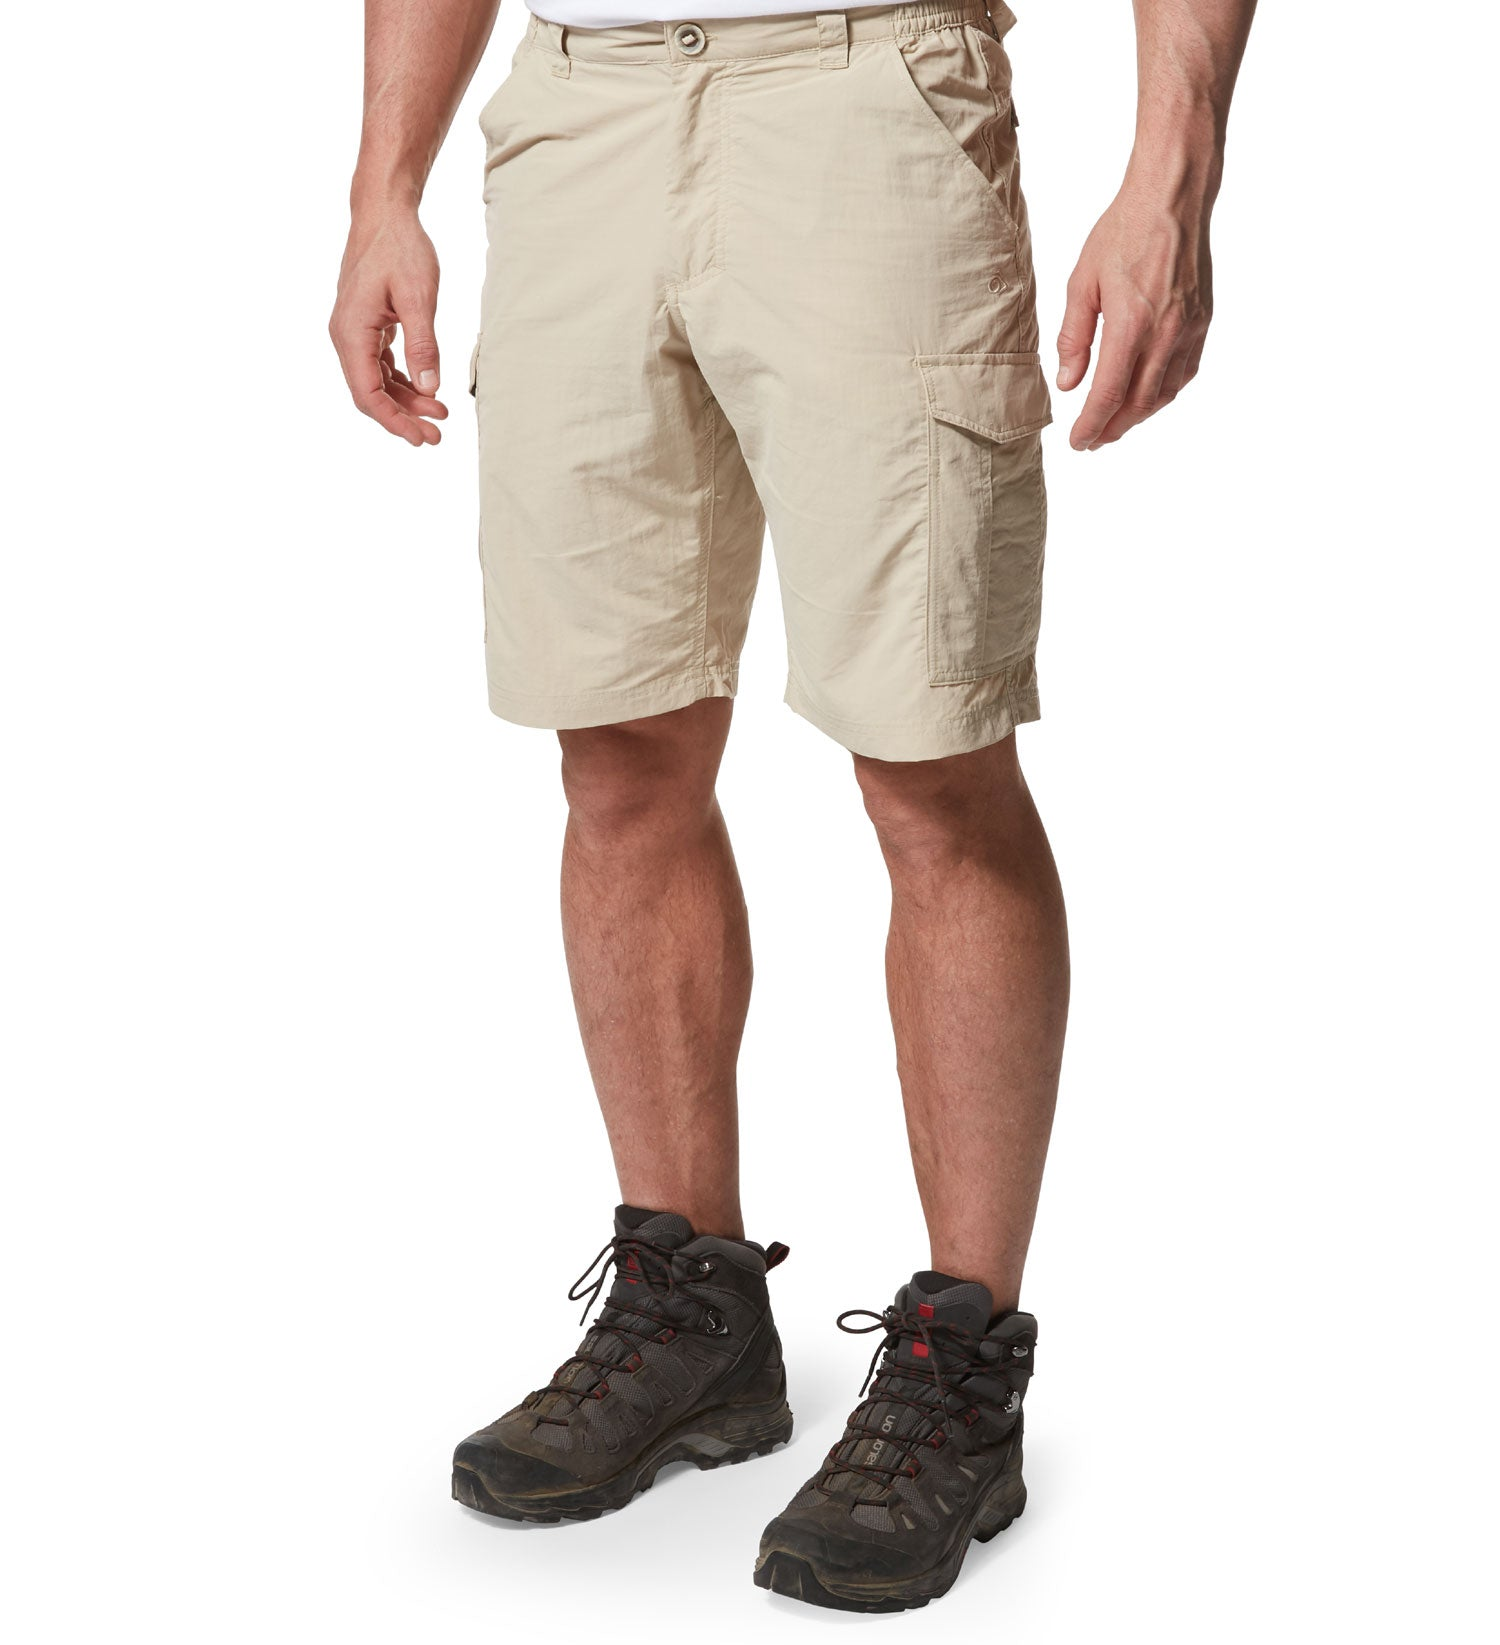 Men's Travel shorts with cargo pockets